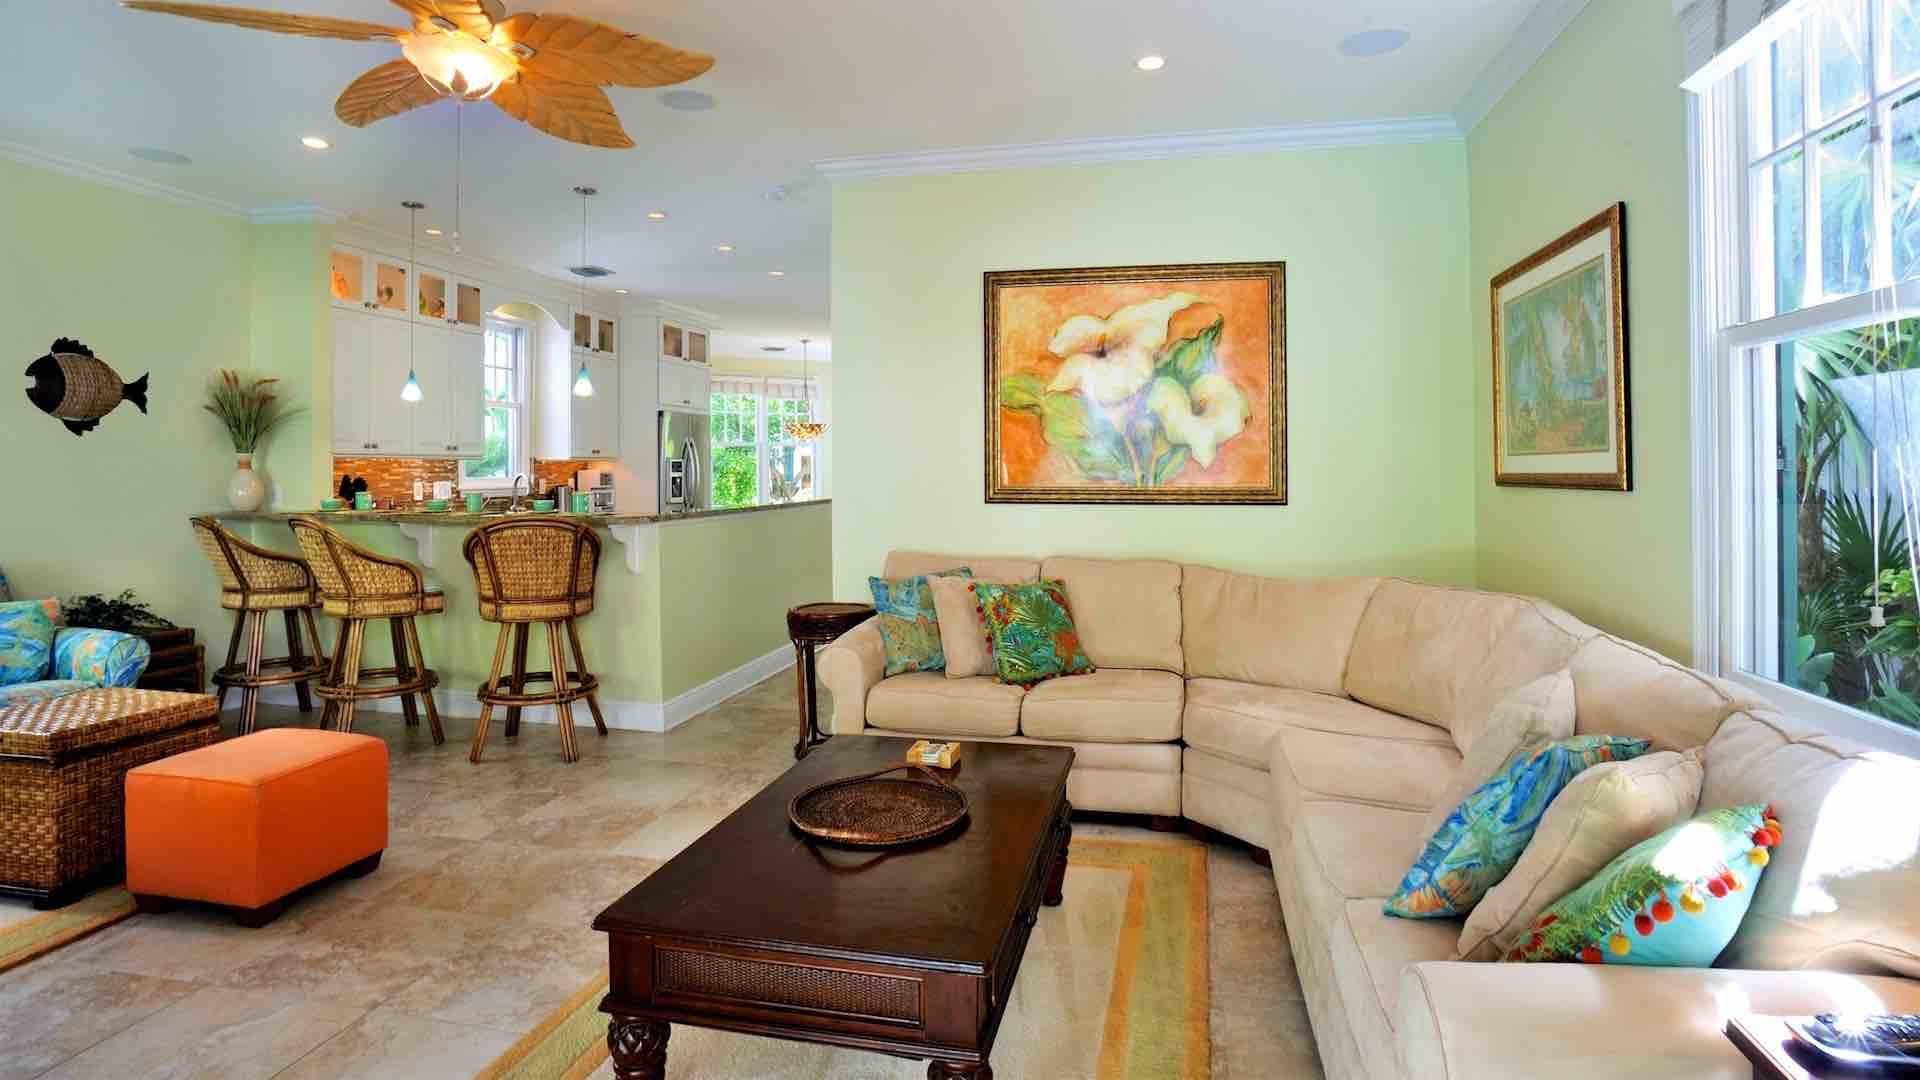 The open plan is perfect for entertaining in the tropics...